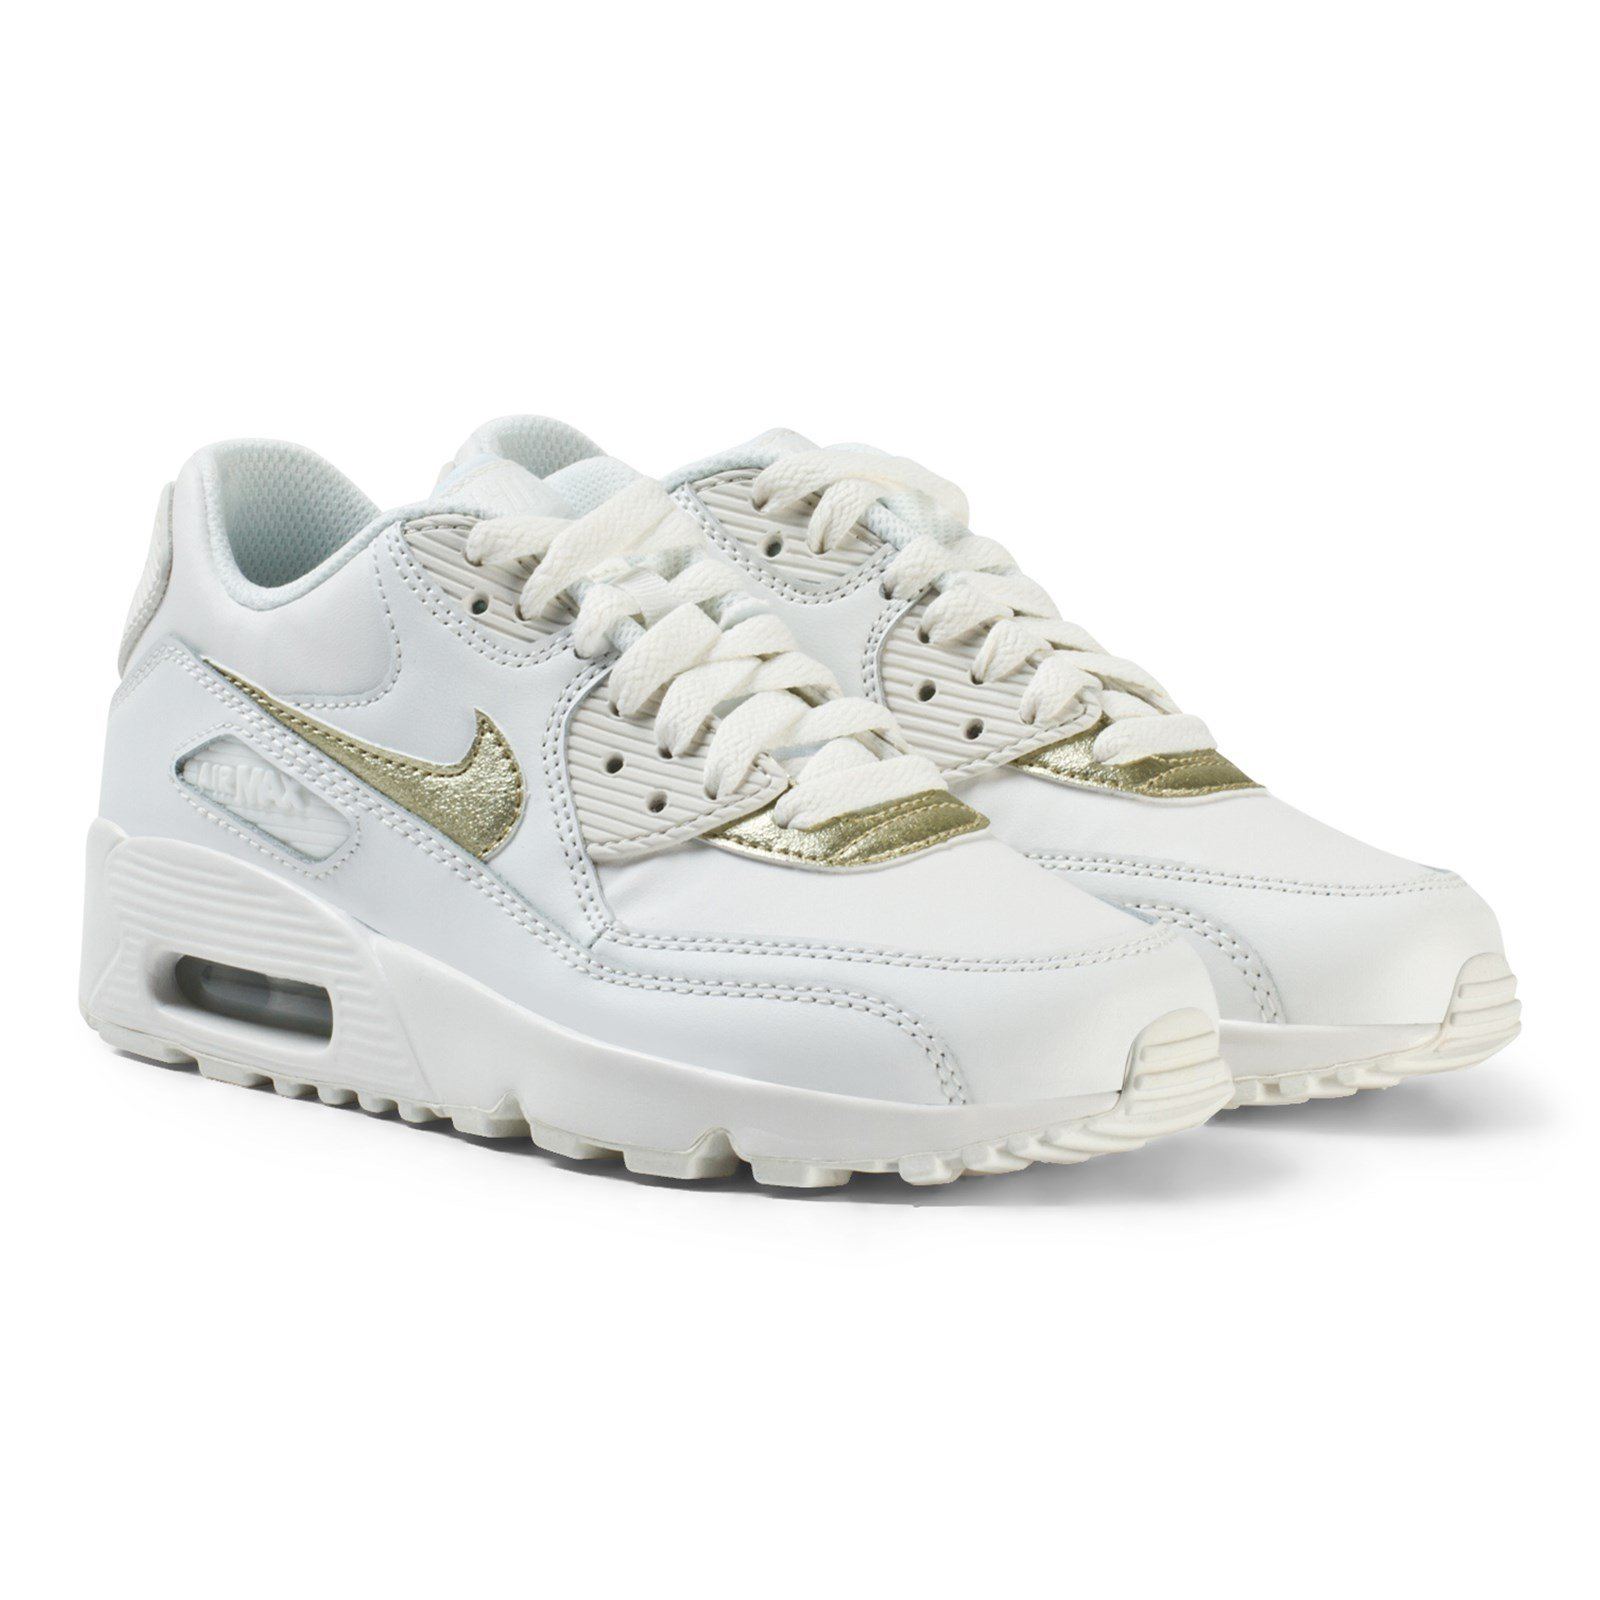 NIKE - Air Max 90 Leather Junior Sneakers White/Gold - Babyshop.com